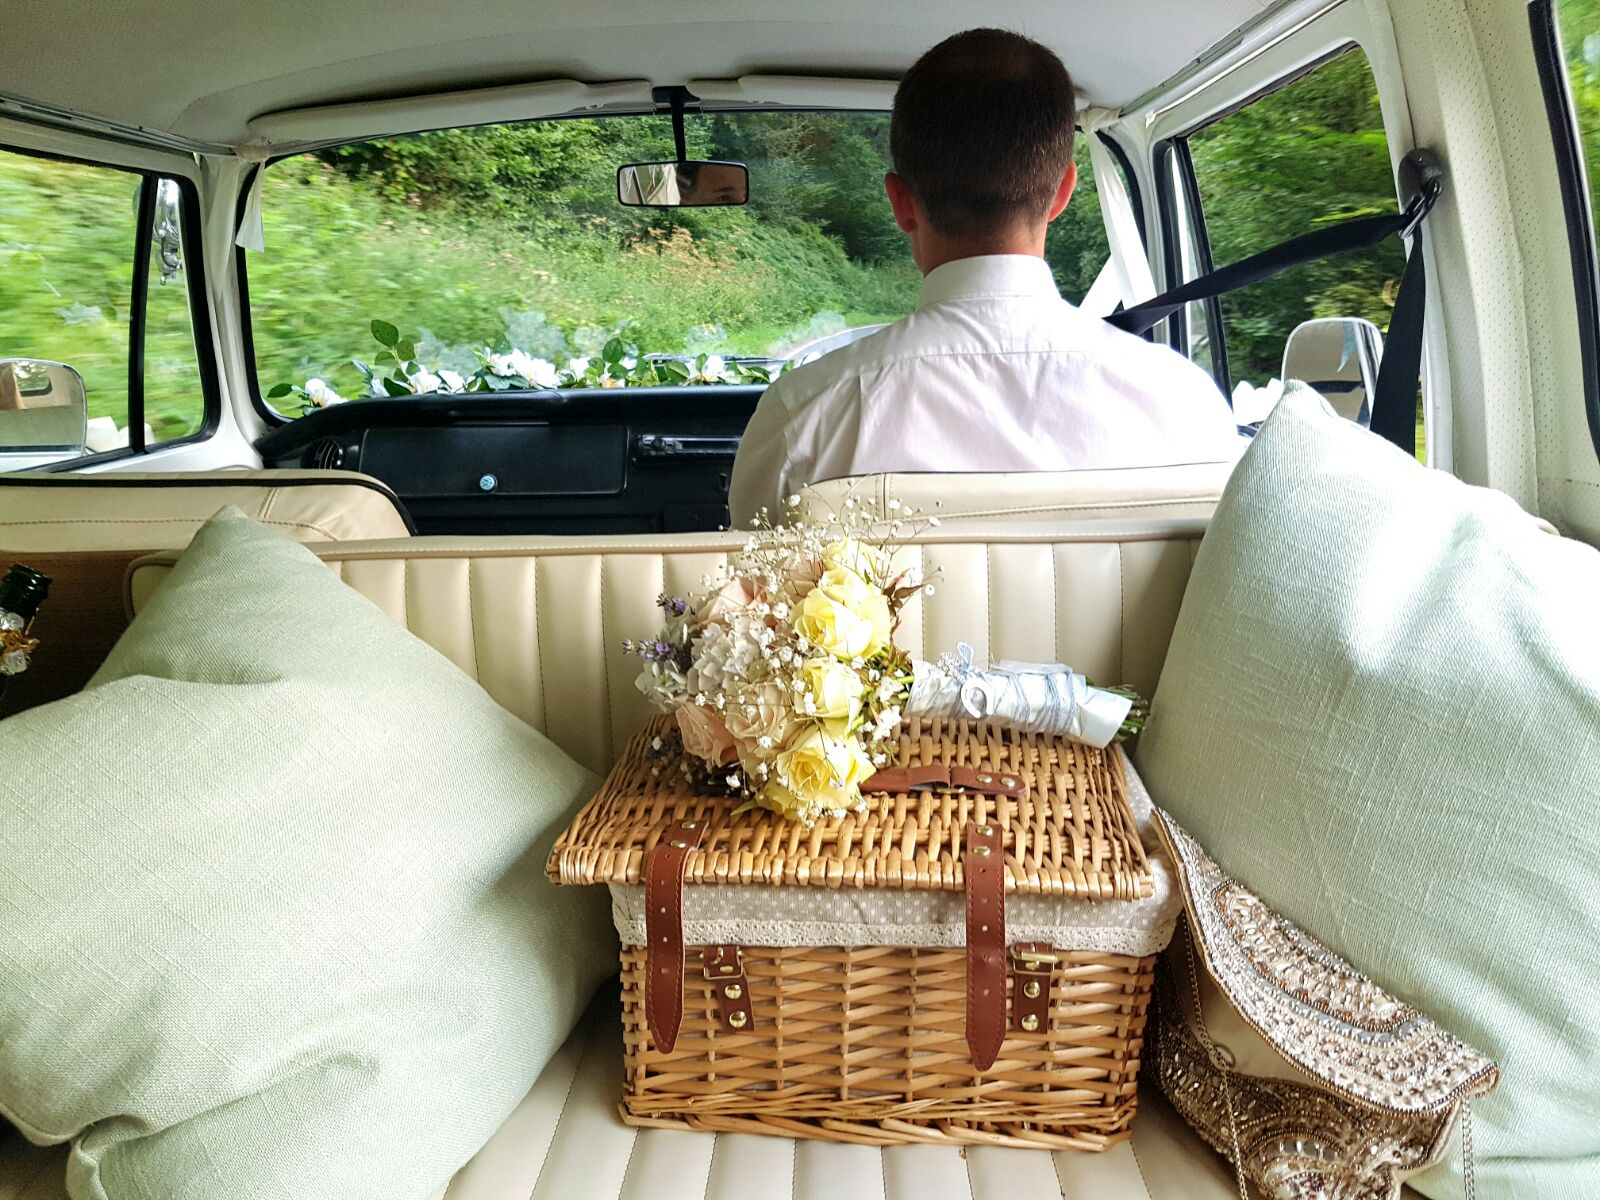 Chauffeur-driven wedding transport